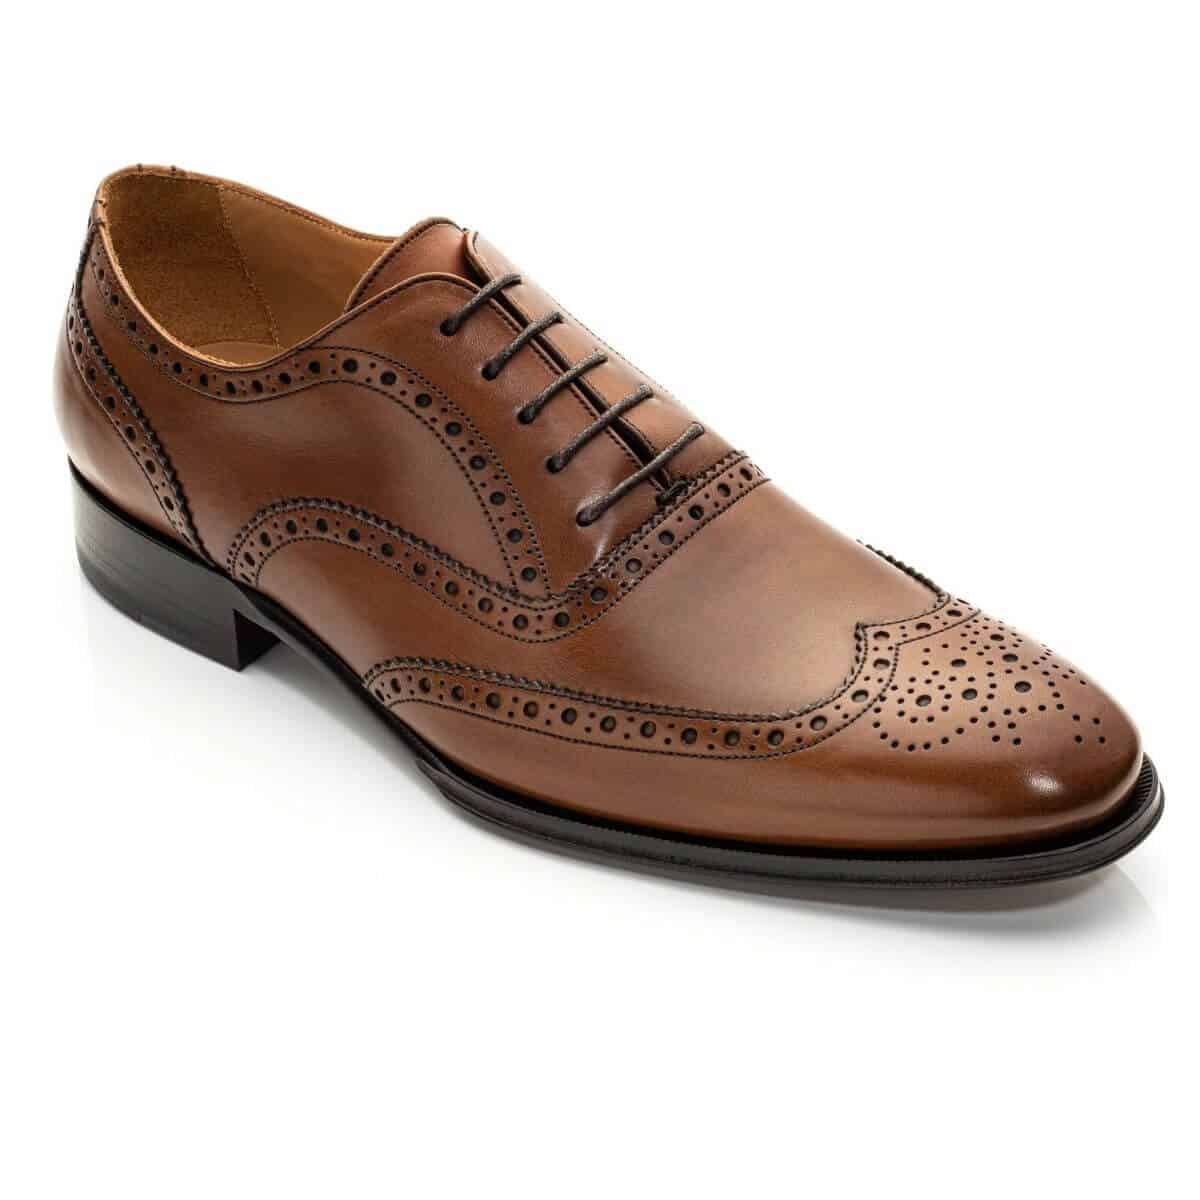 Cognac wingtip Oxford shoe.